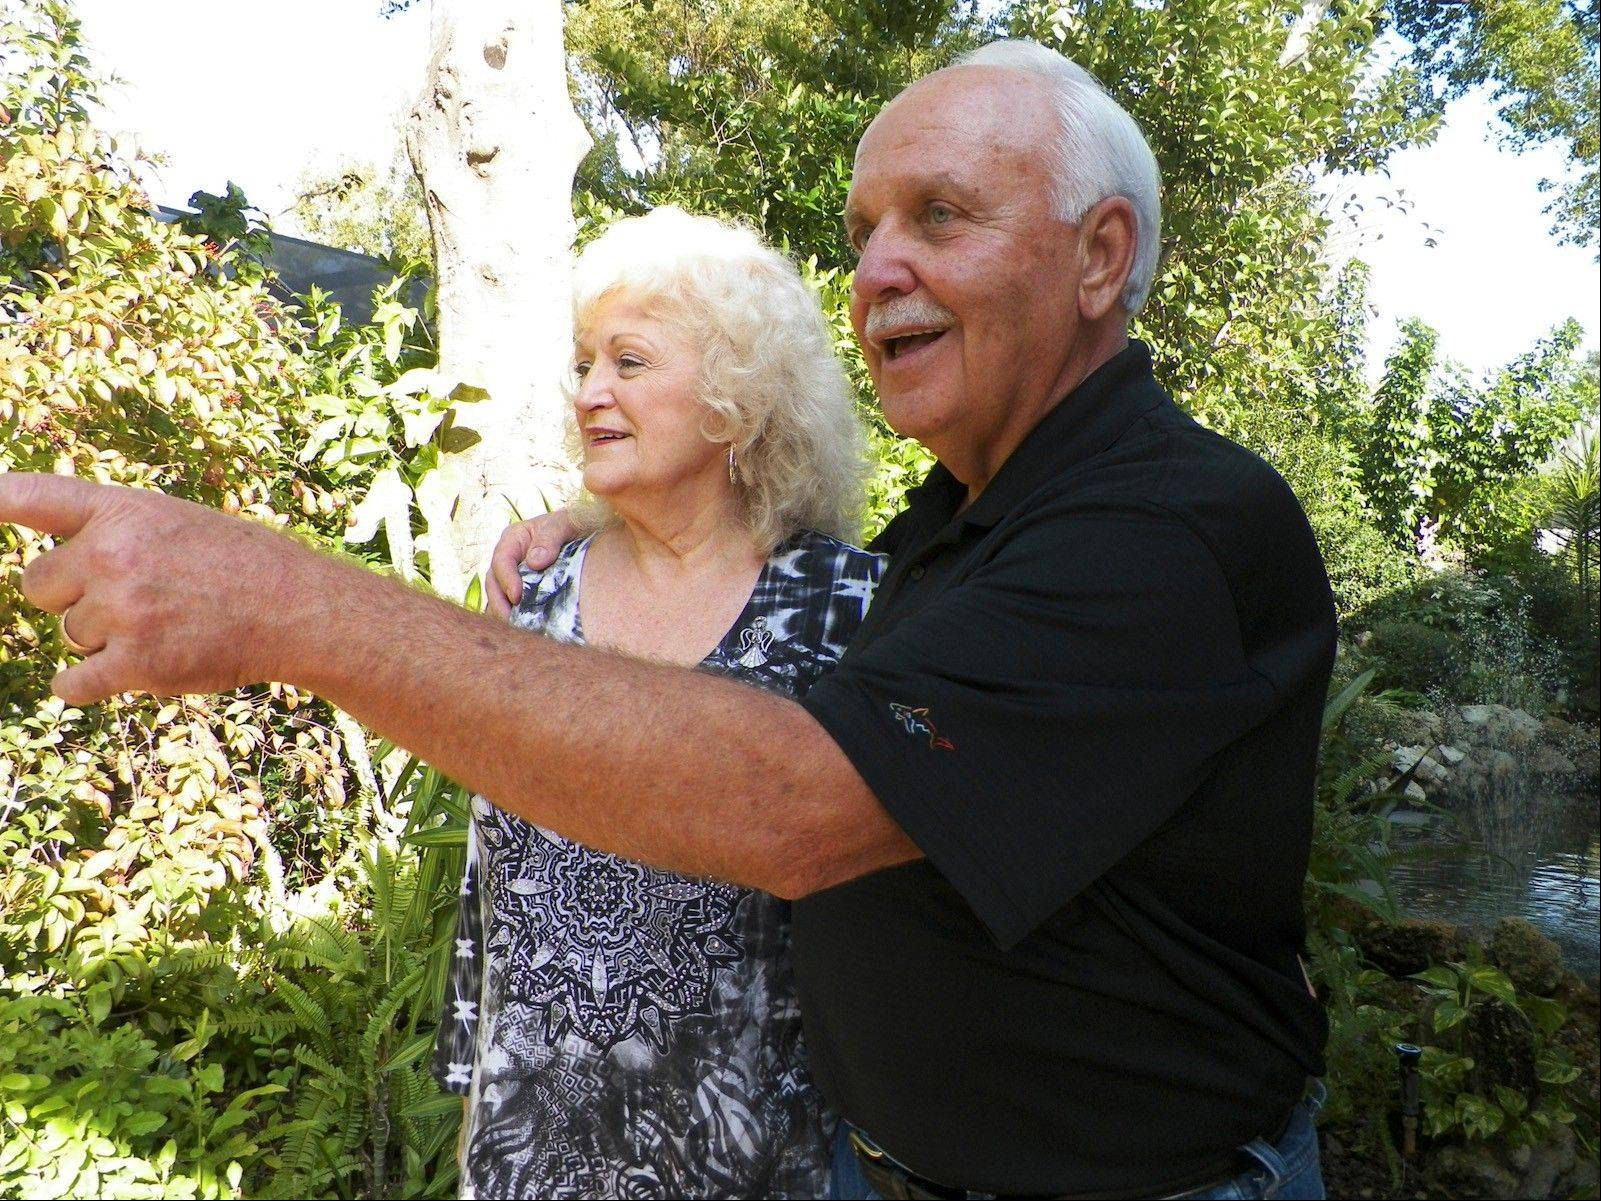 Charlie Majeski points out a favorite garden feature with his wife, Barbara.